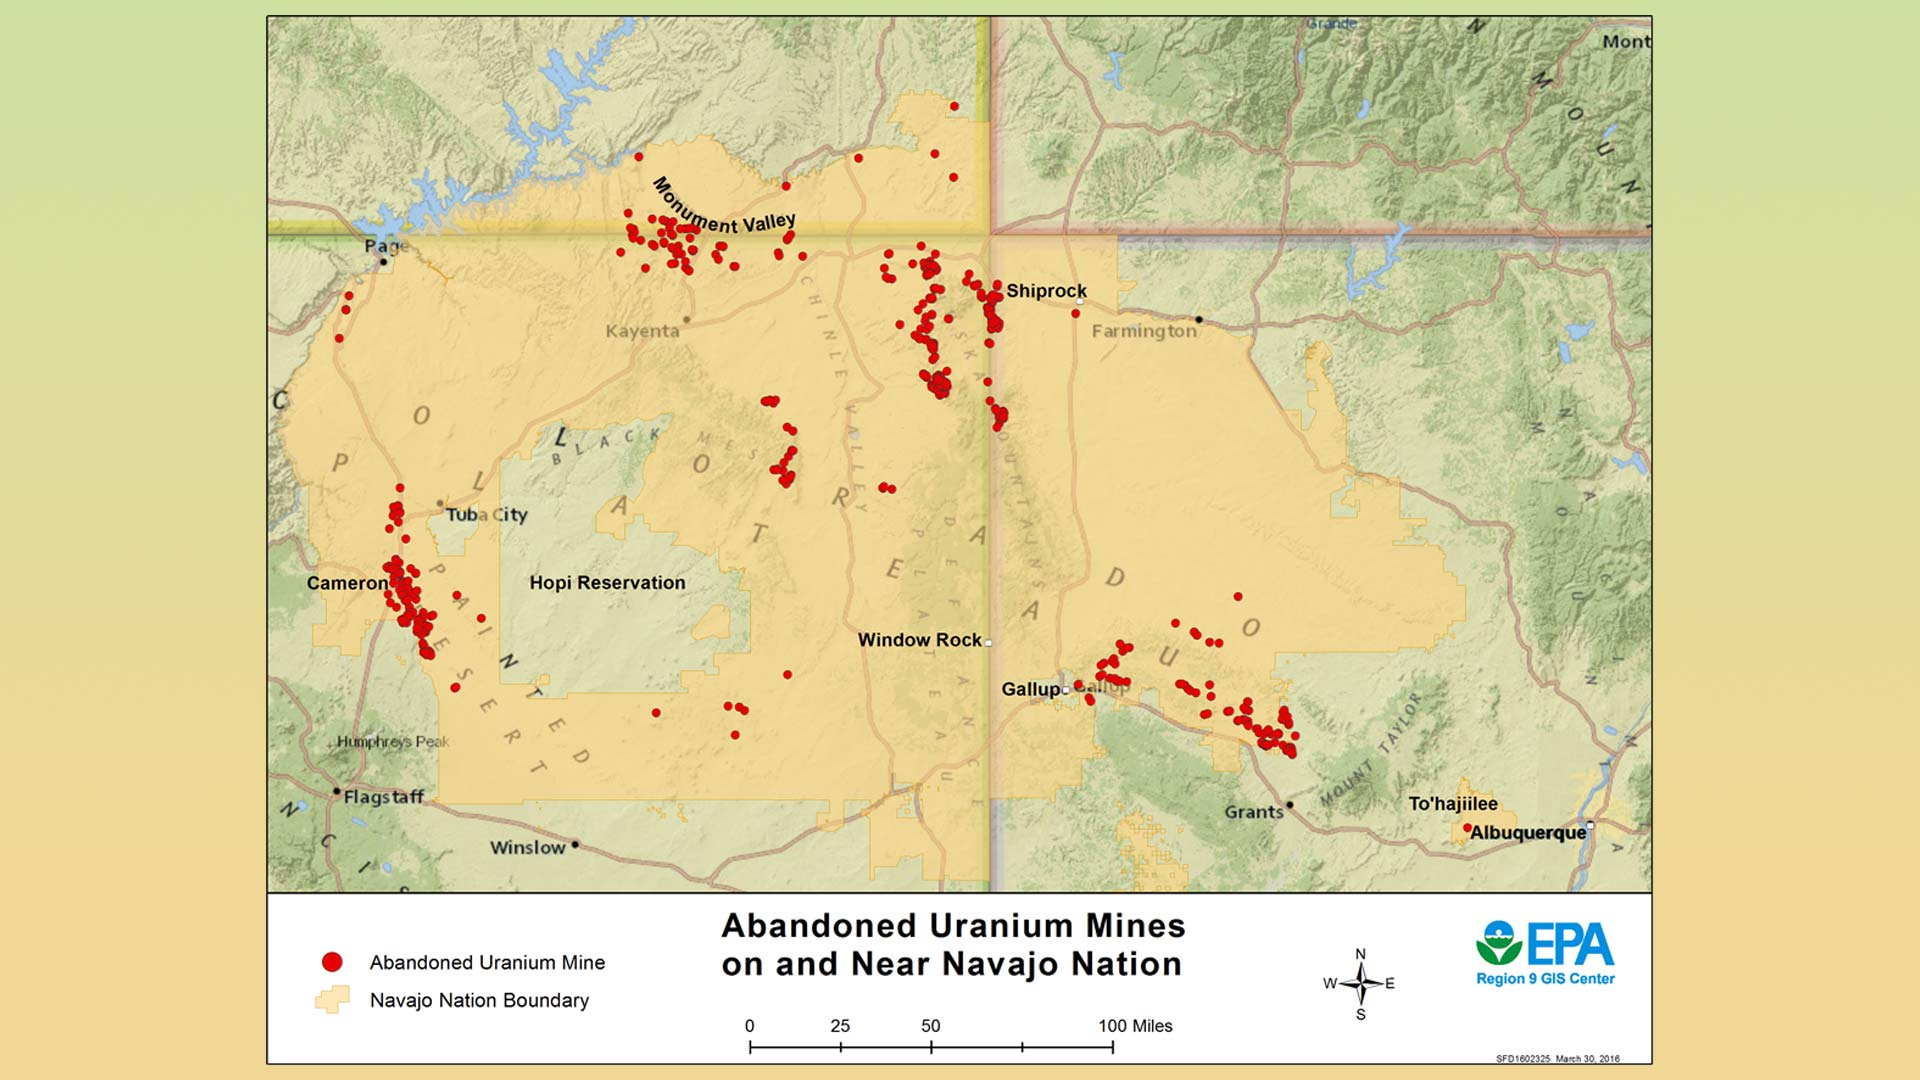 An EPA map dated March 30, 2016 showing abandoned uranium mines on the Navajo Nation.